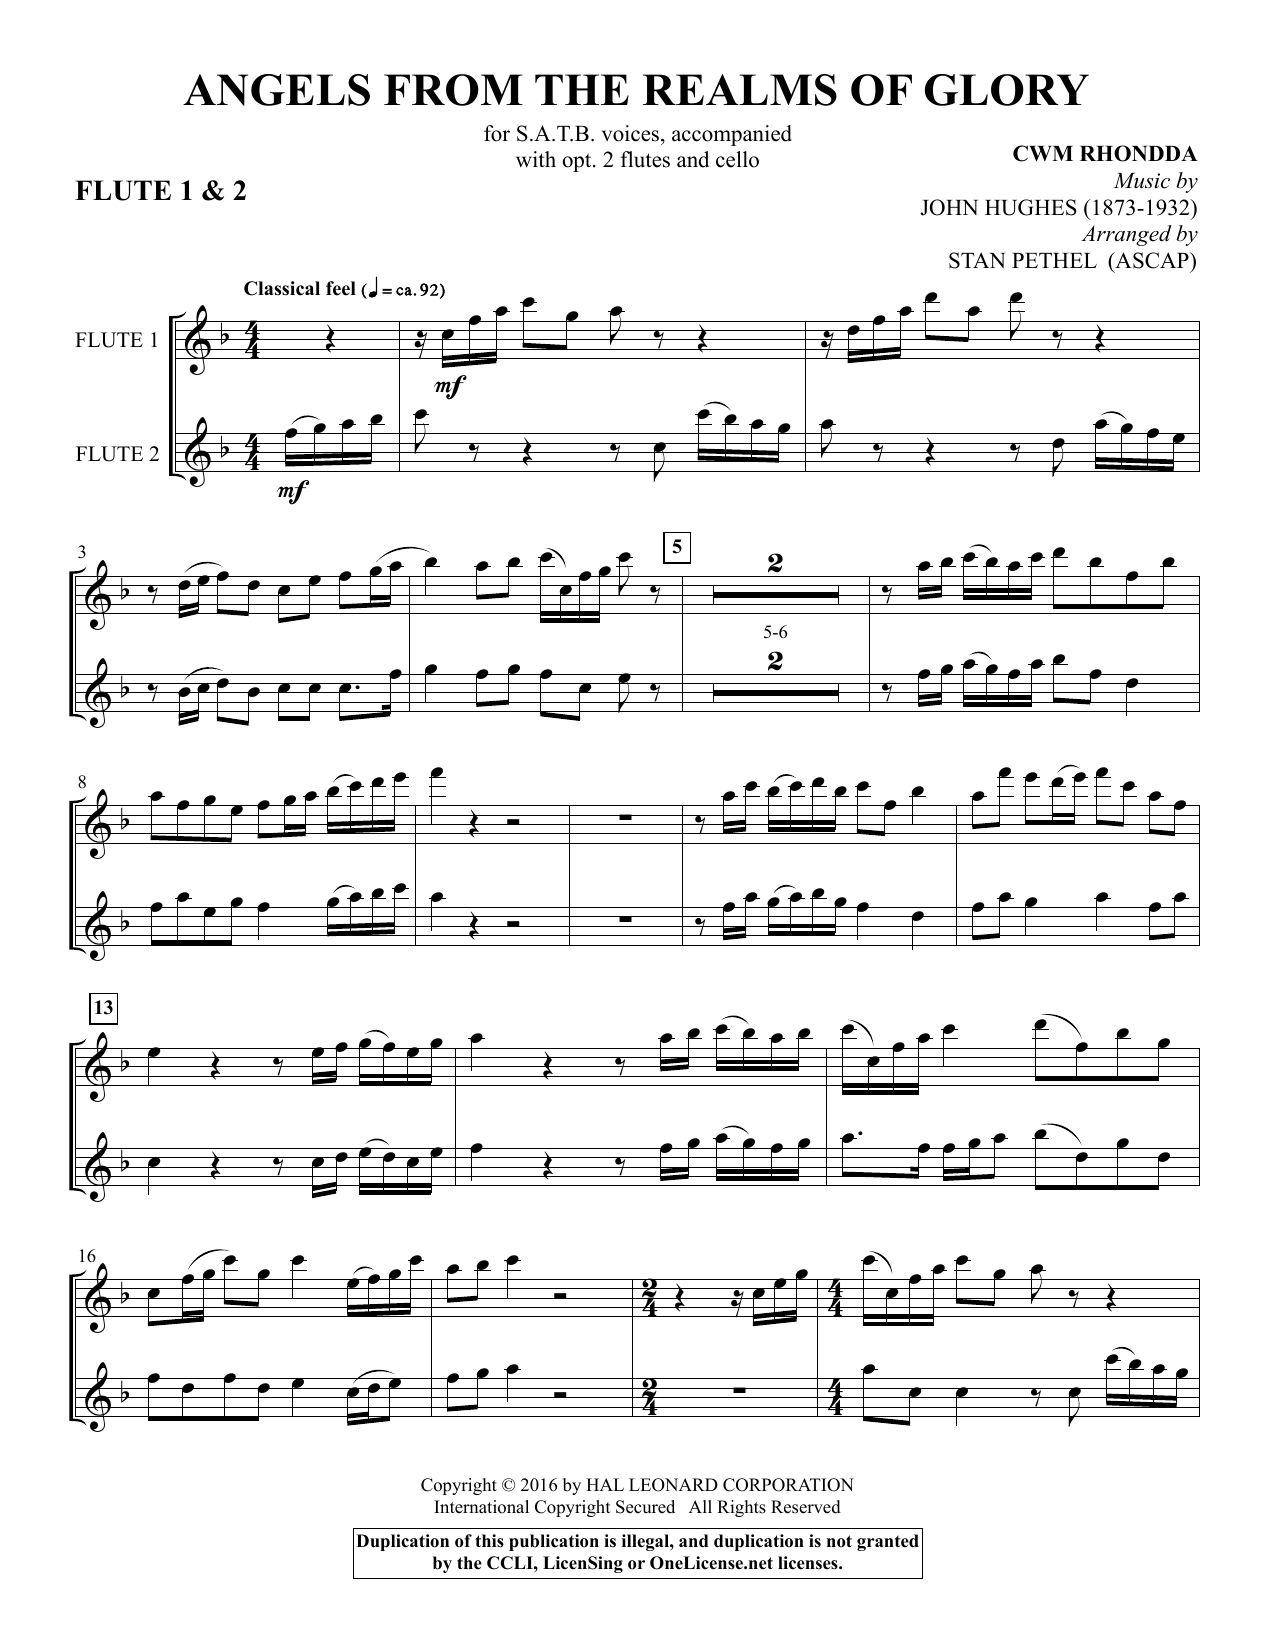 Stan Pethel Angels from the Realms of Glory - Flute 1 & 2 sheet music notes and chords. Download Printable PDF.